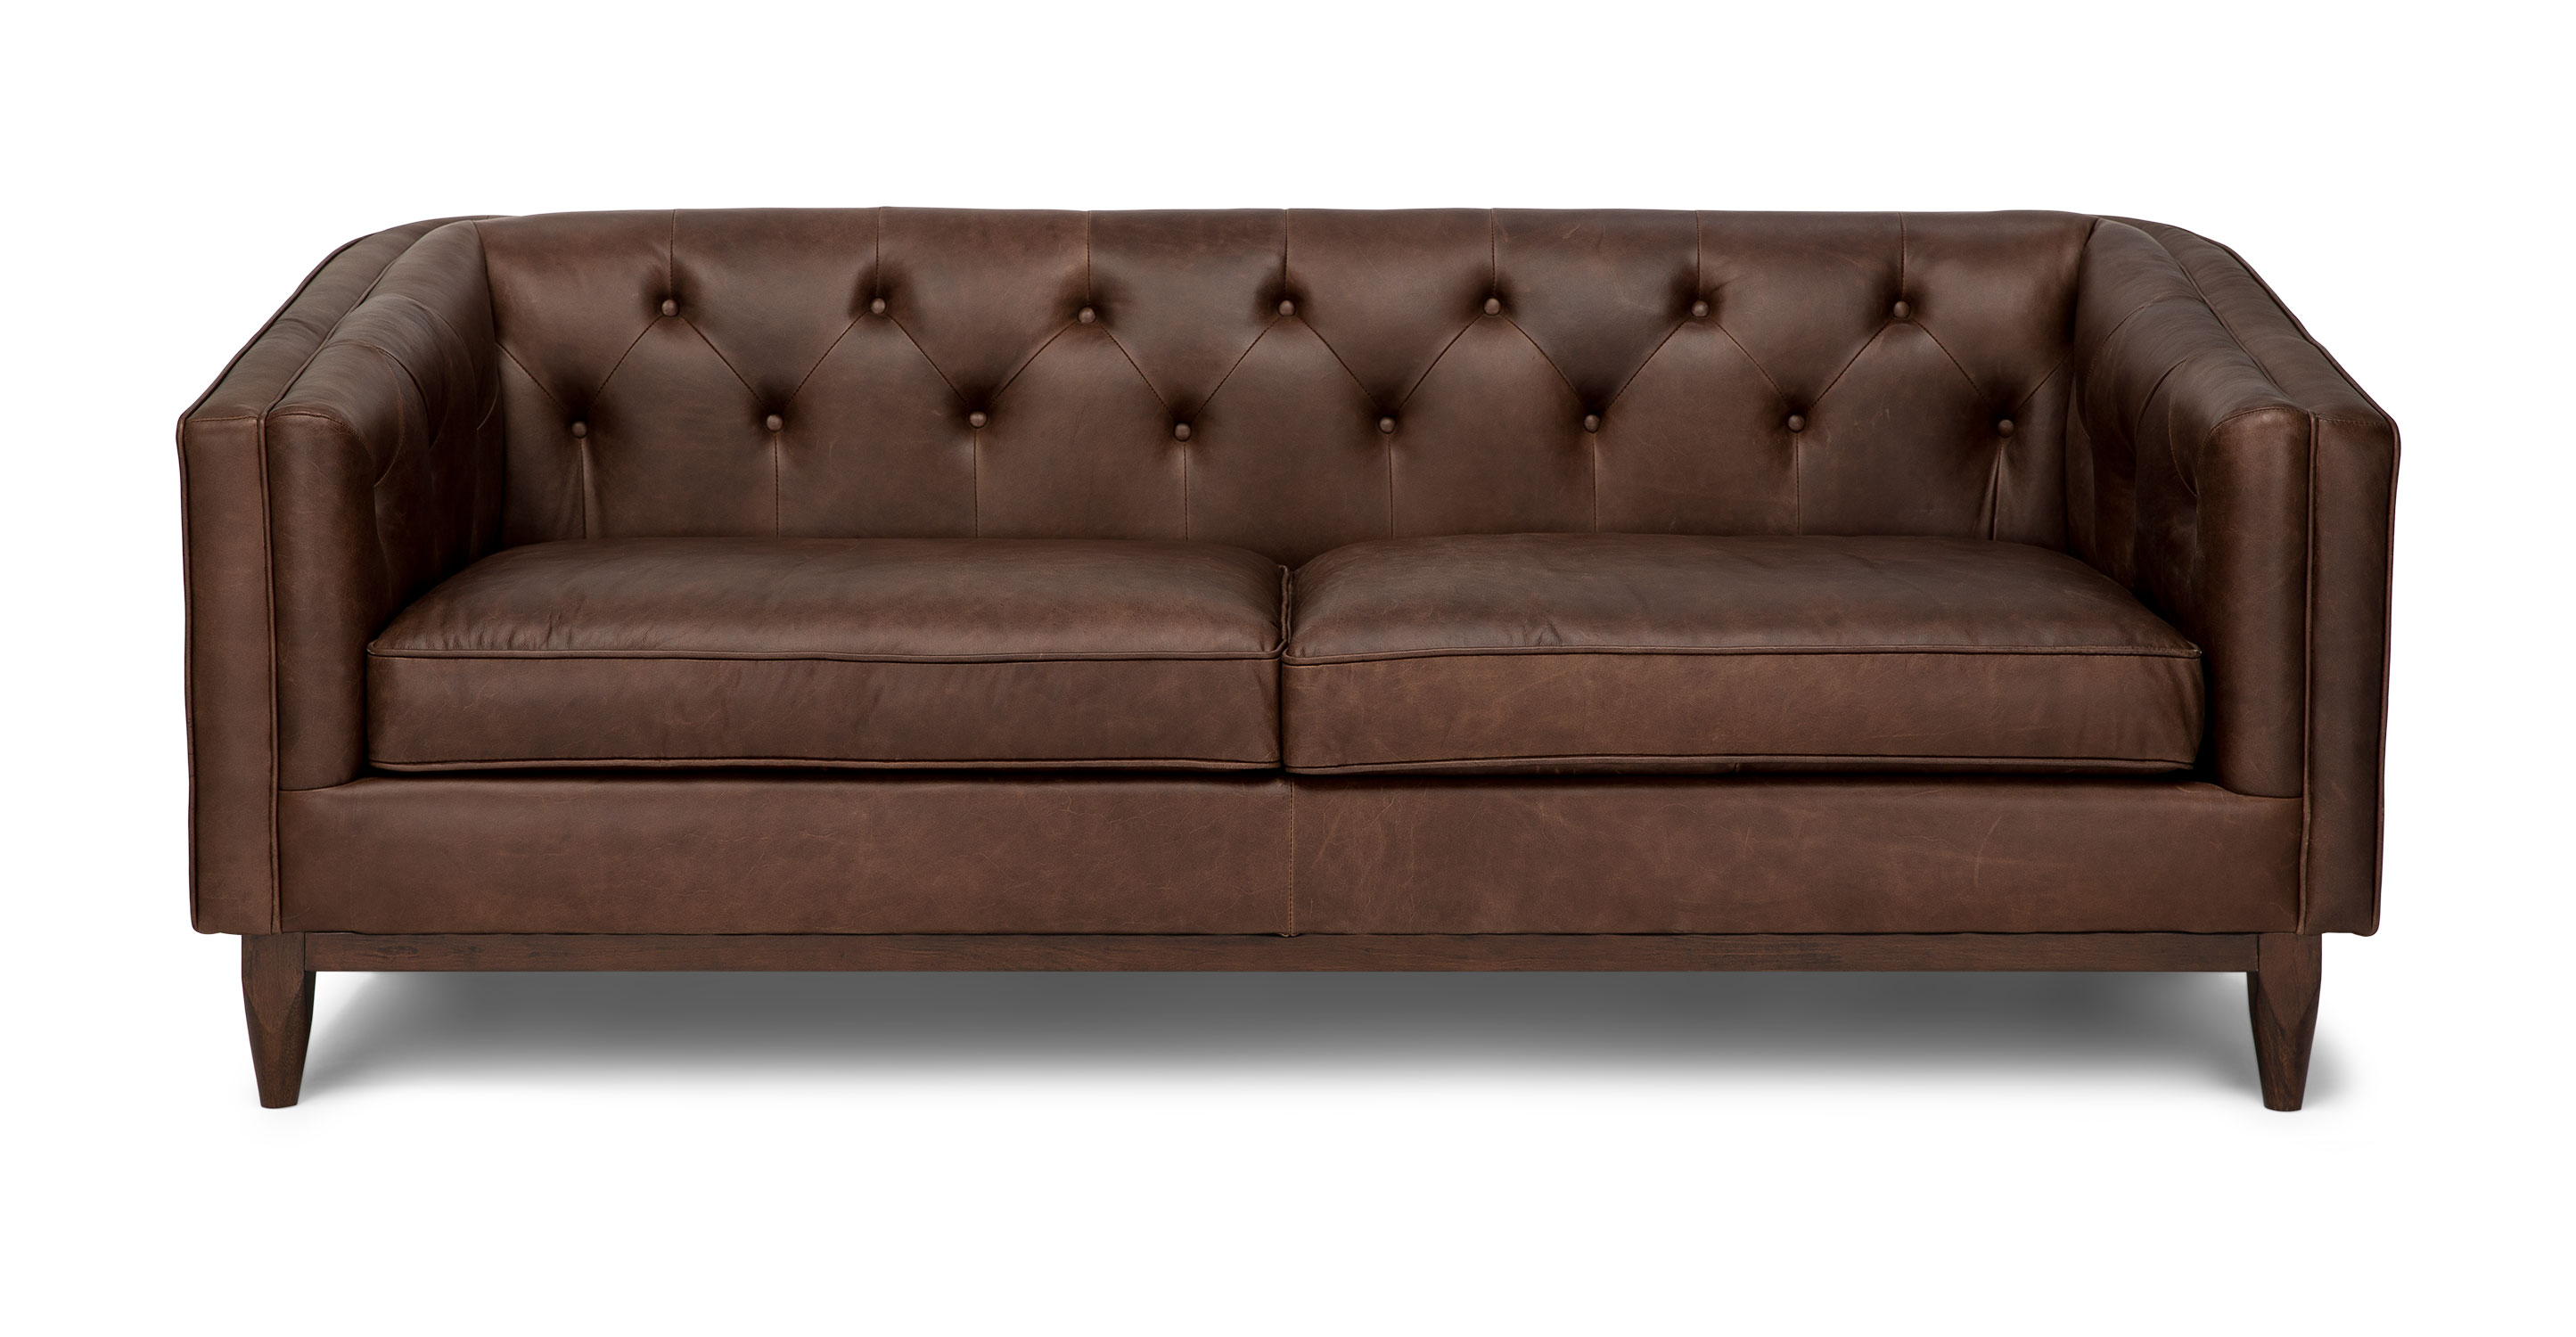 oxblood red chesterfield sofa tribeca grand crate and barrel leather second